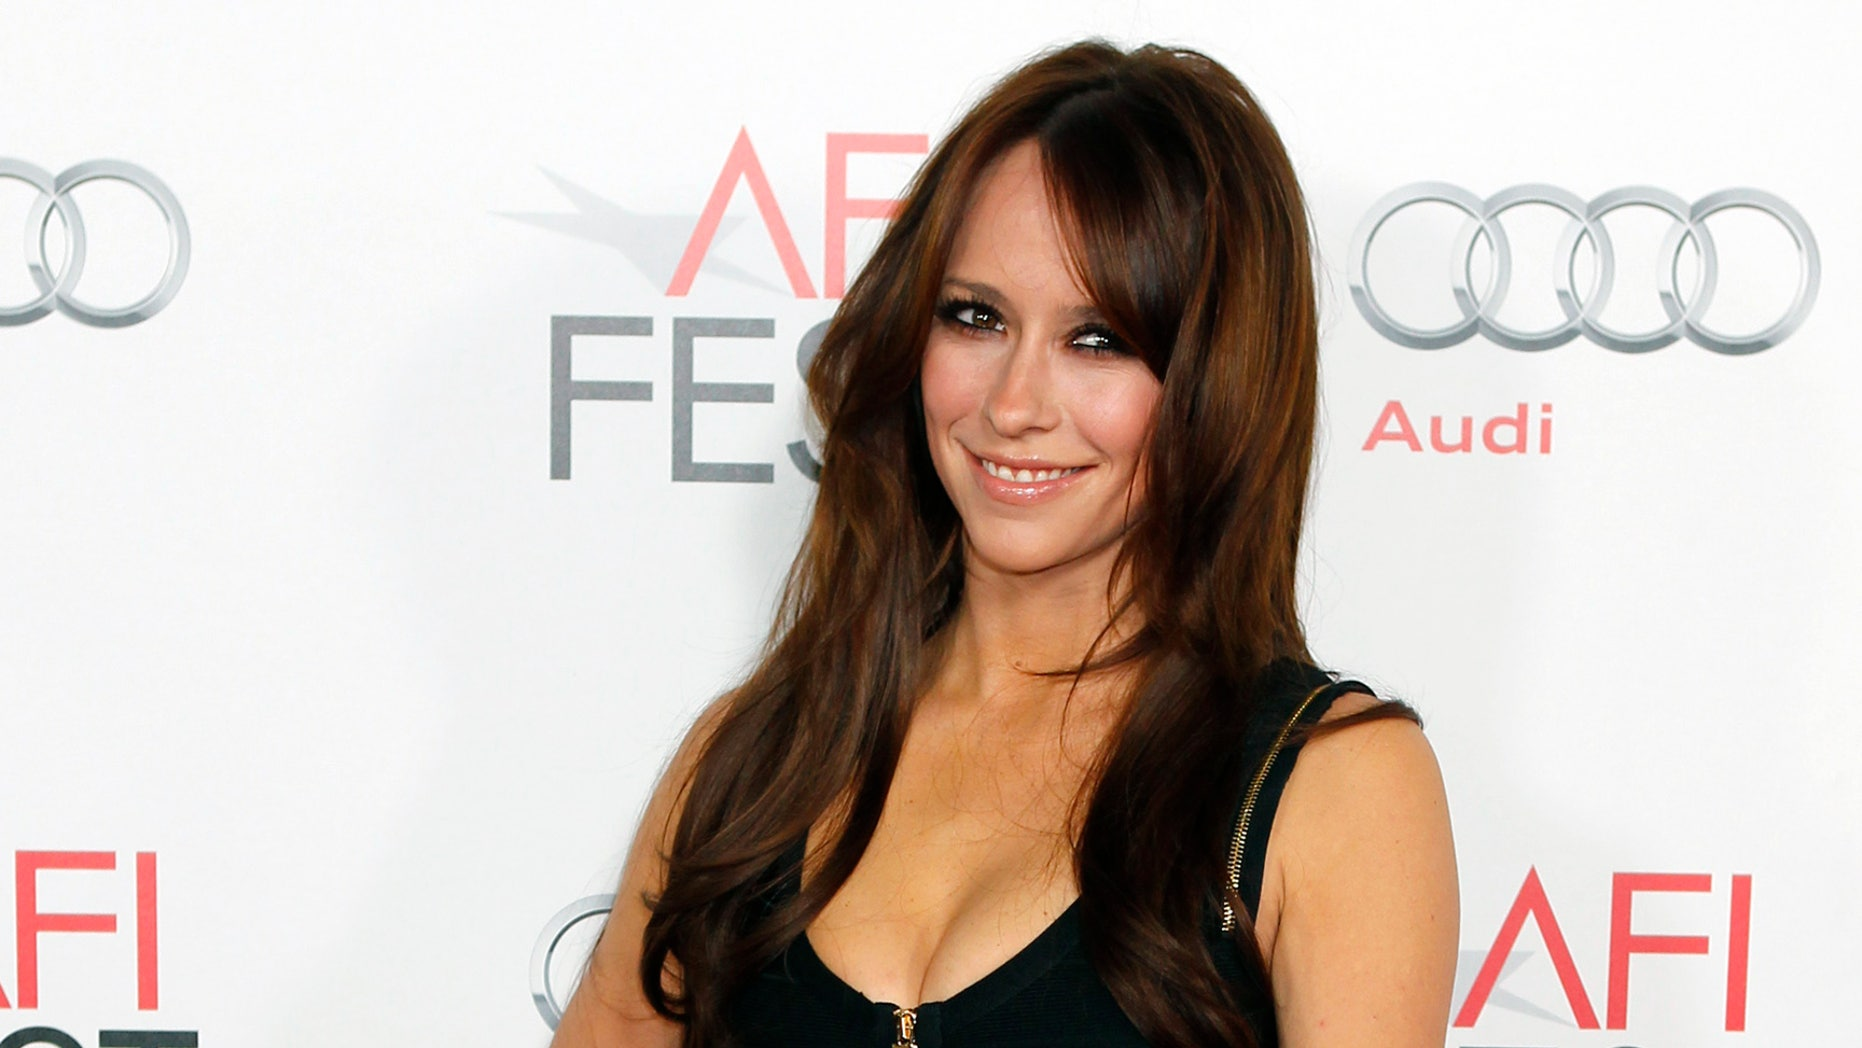 """Actress Jennifer Love Hewitt  poses at the opening night gala for AFI Fest 2011 with the premiere of director Clint Eastwood's film """"J. Edgar""""  in Hollywood November 3, 2011. REUTERS/Fred Prouser (UNITED STATES - Tags: ENTERTAINMENT) - RTR2TLHA"""